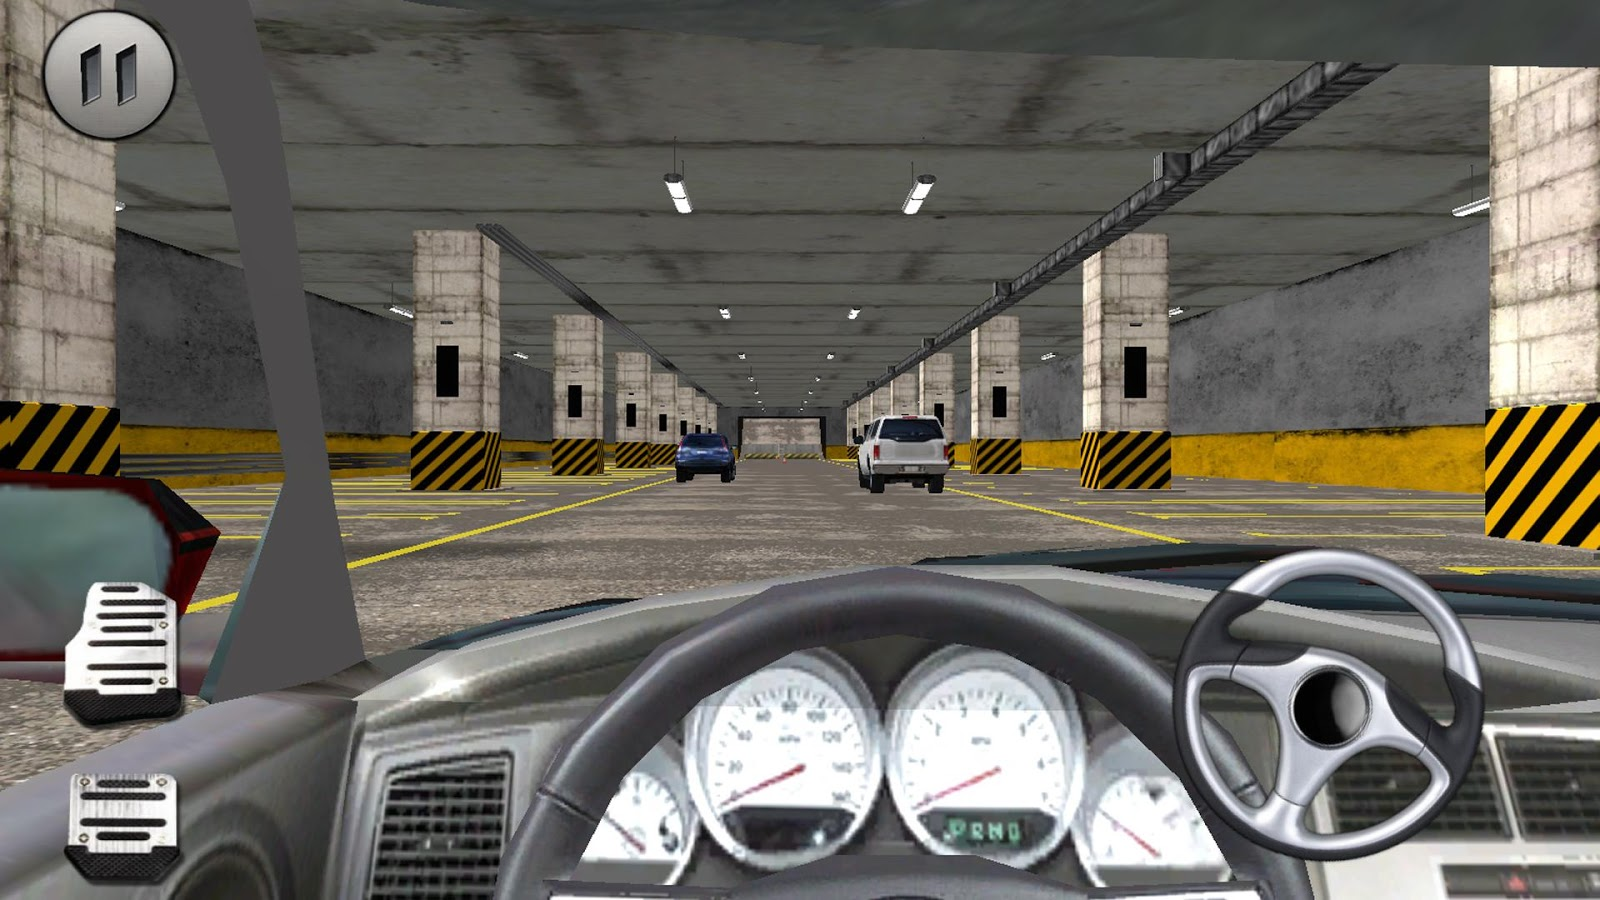 Super car city driving sim free games free online - Suv Car Parking Game 3d Screenshot